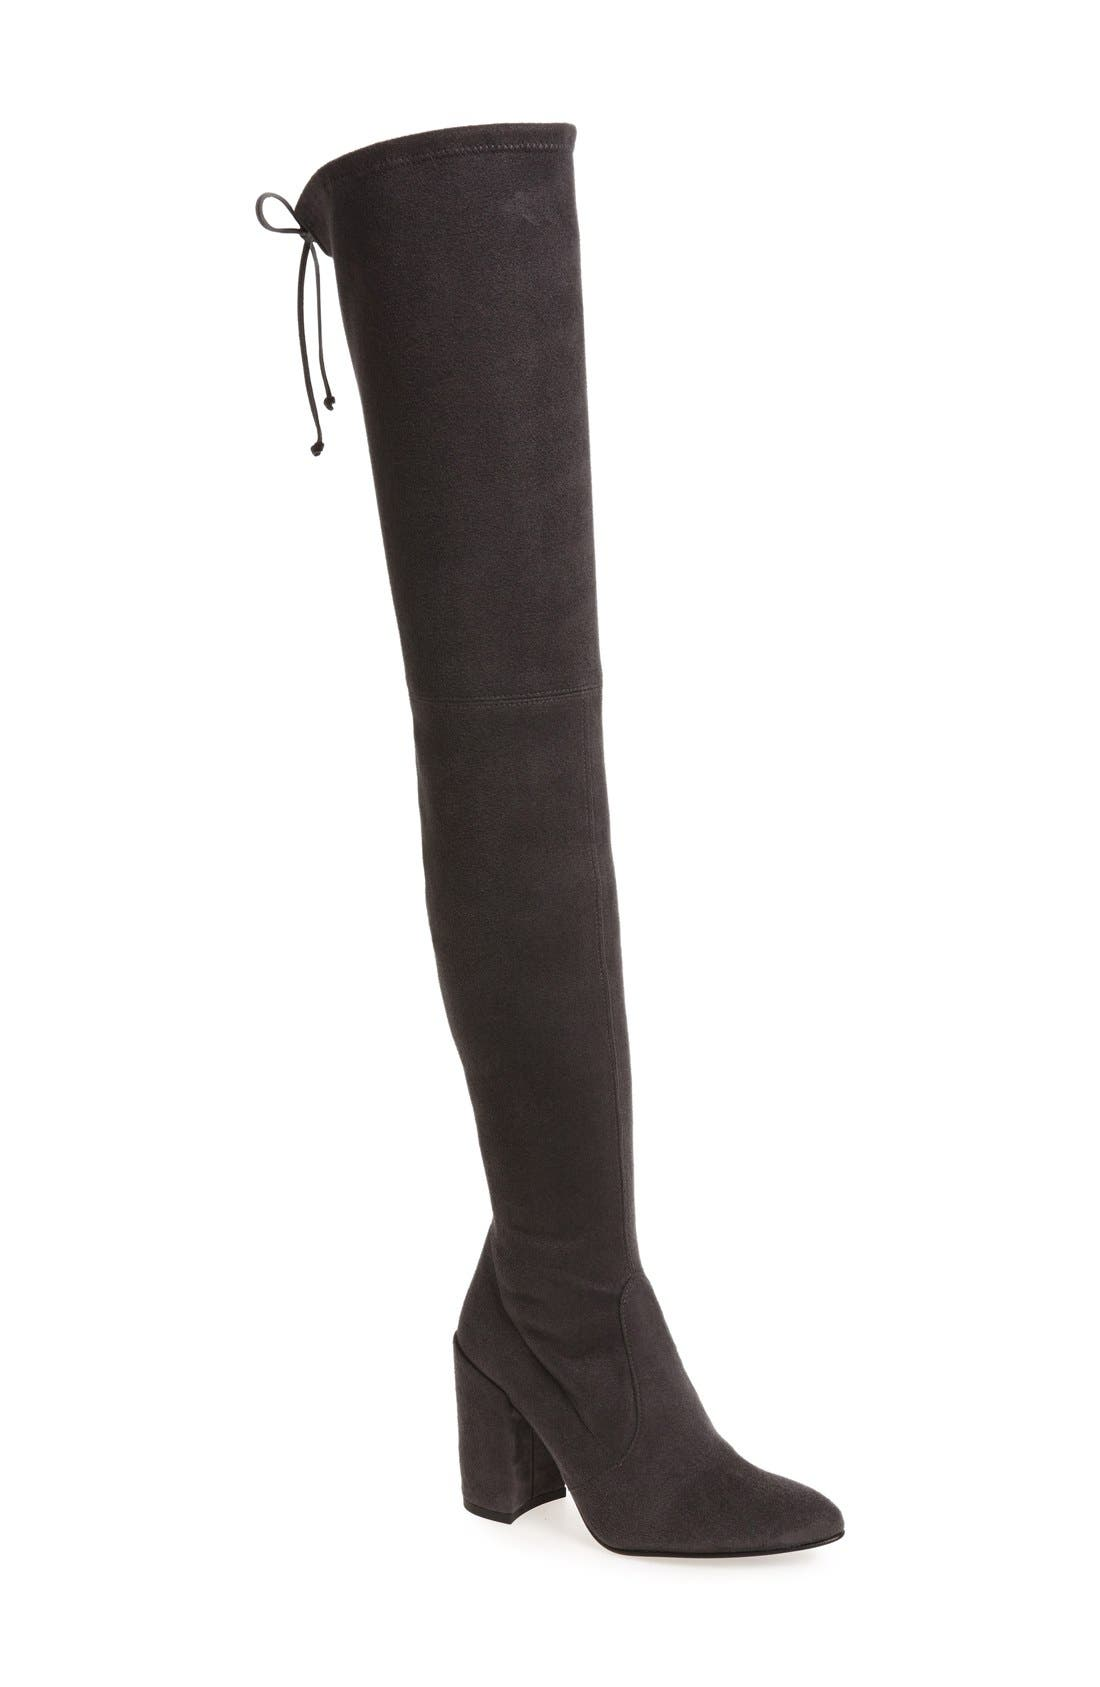 'All Legs' Thigh High Boot,                         Main,                         color, Grey Ultrastretch